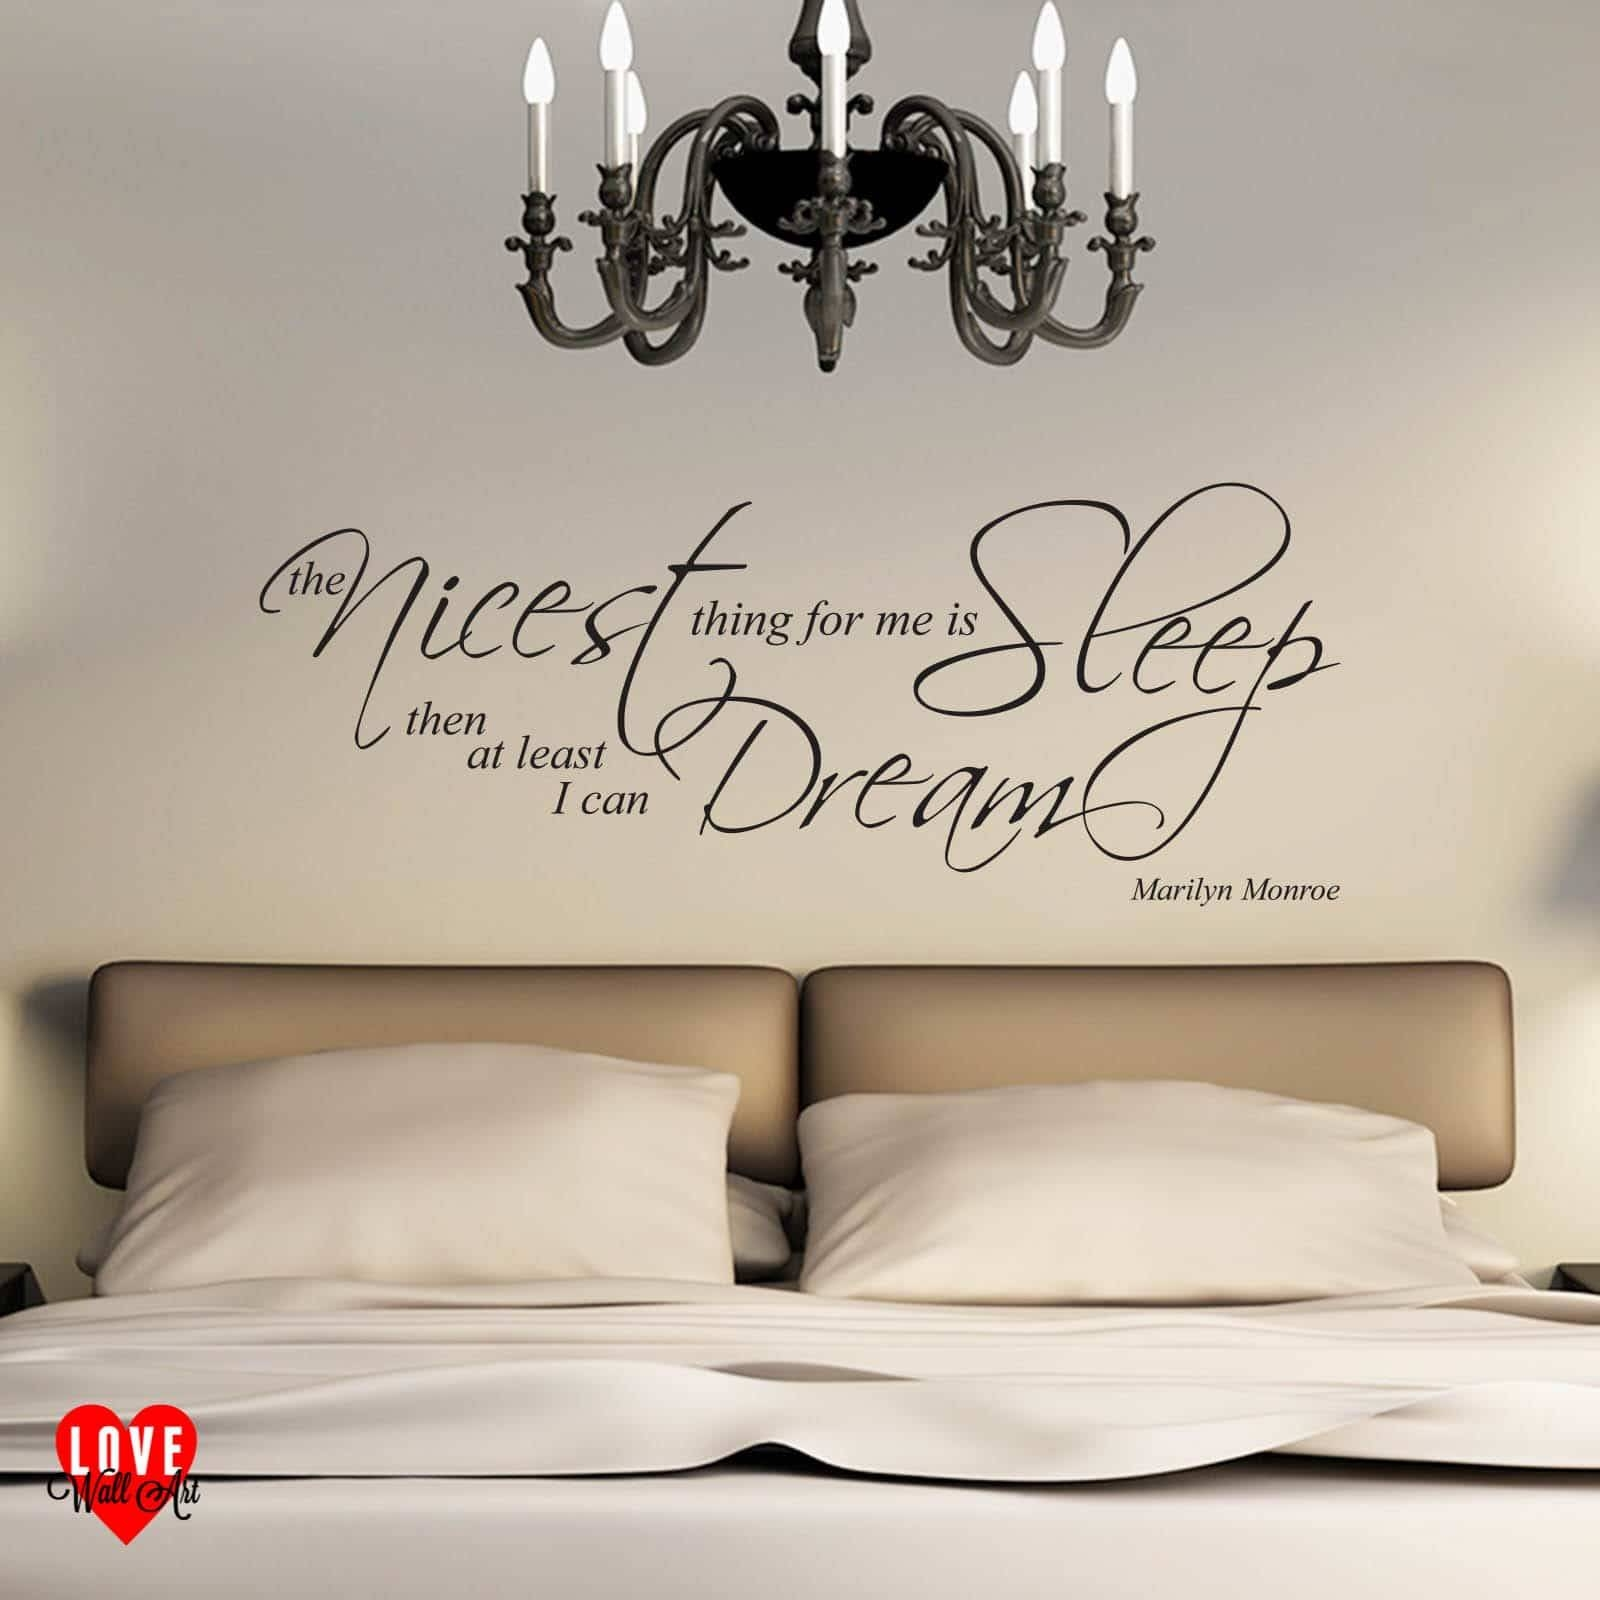 Marilyn Monroe Quote The Nicest Thing For Me Is Sleep Wall Art With Current Marilyn Monroe Wall Art Quotes (View 8 of 25)